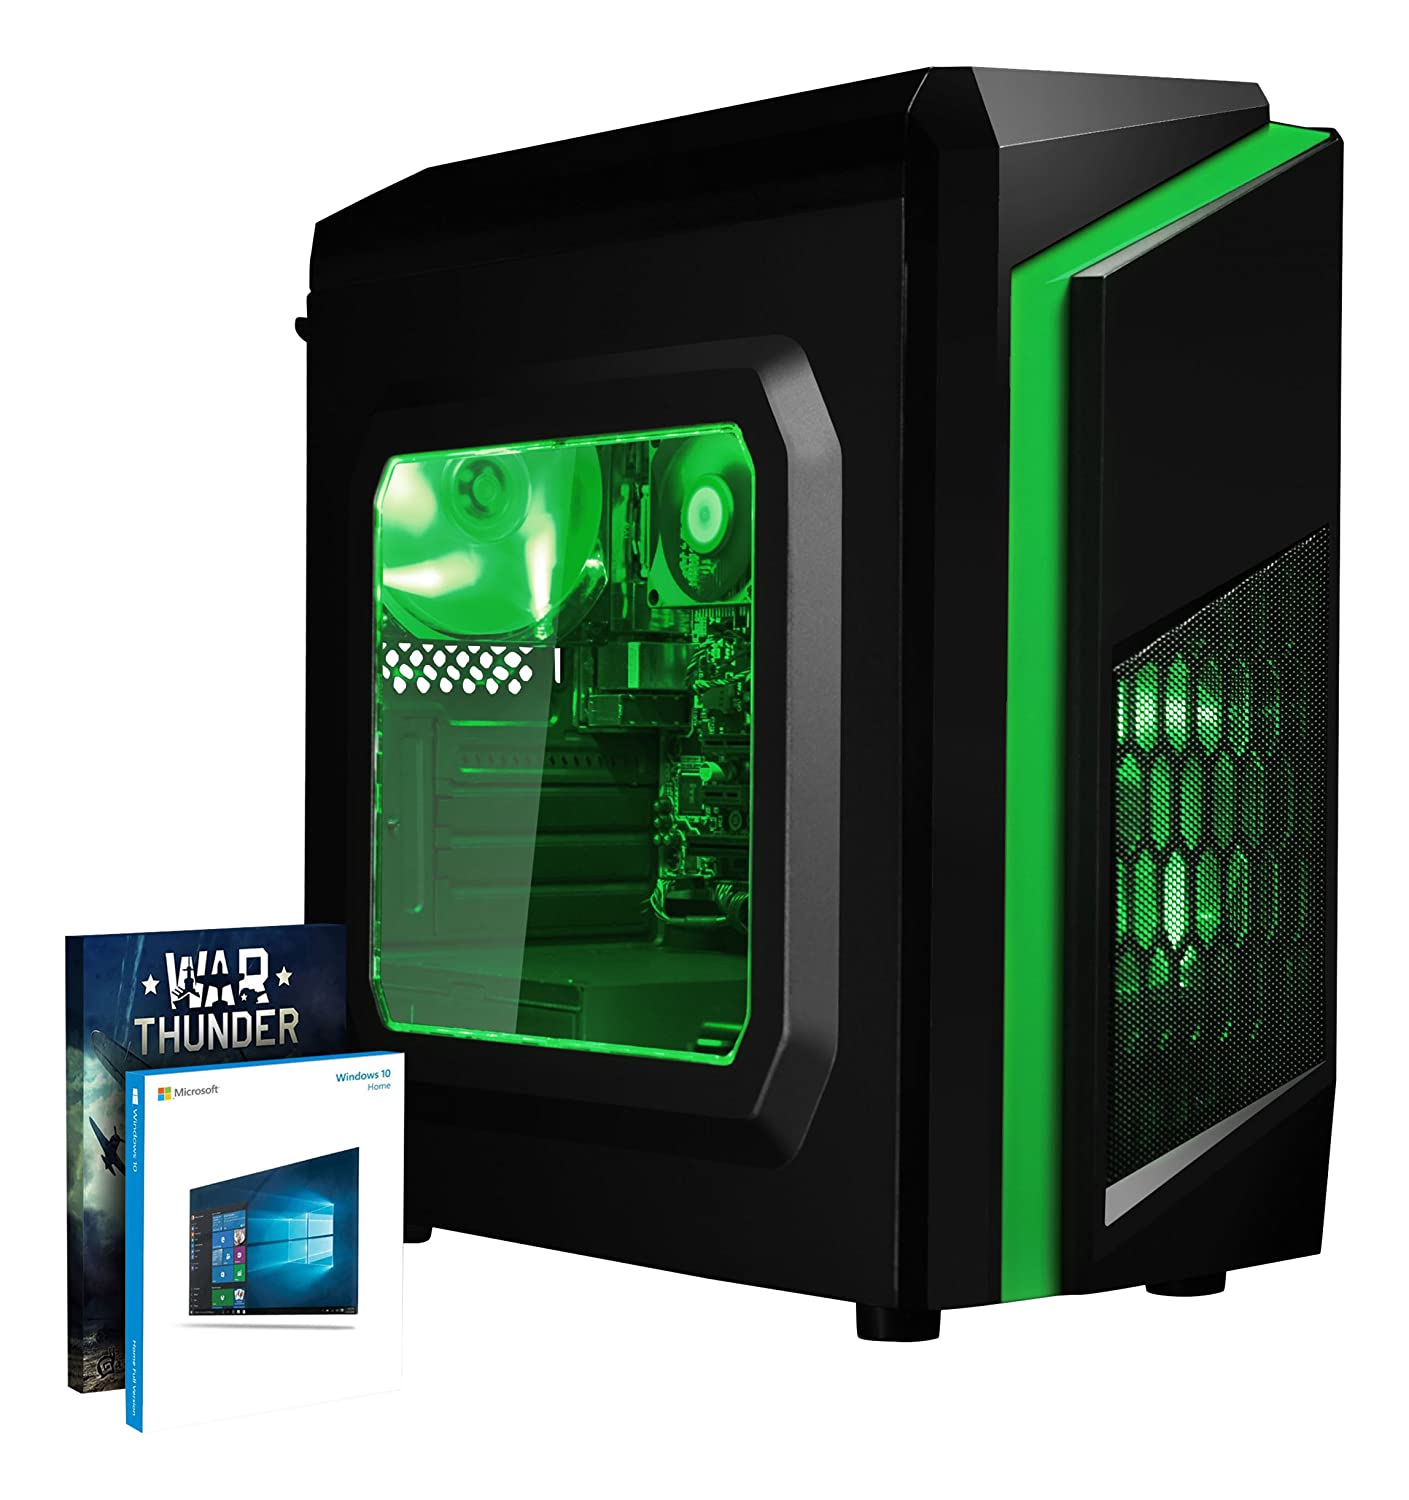 VIBOX FX-35 - Ordenador de sobremesa Gaming (USB, AMD A10, RAM de 8 GB, Disco Duro de 1 TB, 3.6 GHz, Windows 10 Home) Color Verde